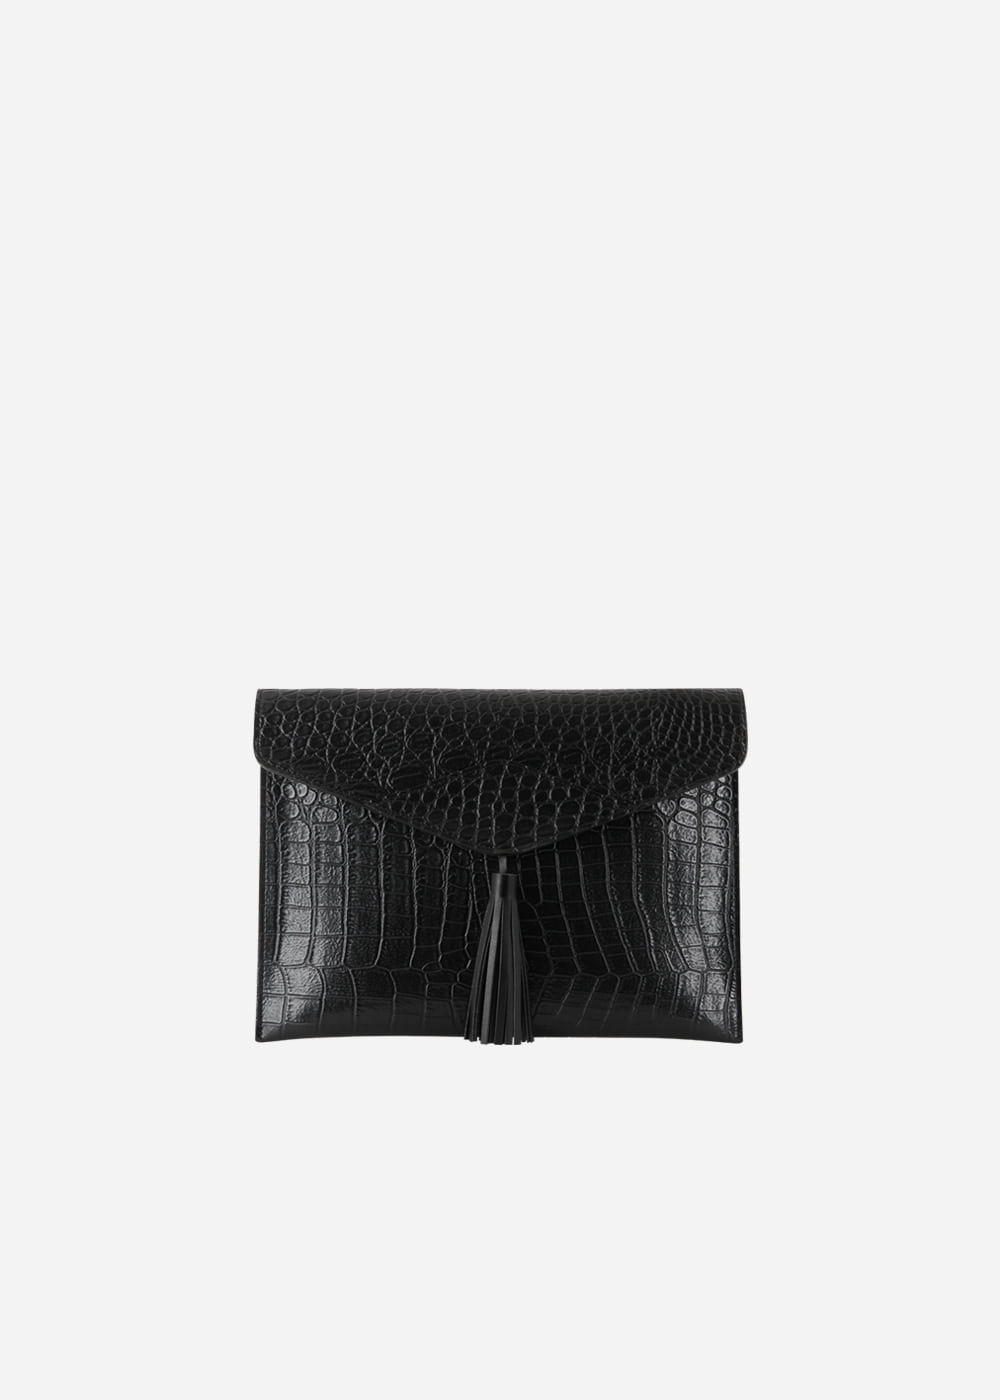 Wani Tassel Point Clutch Black